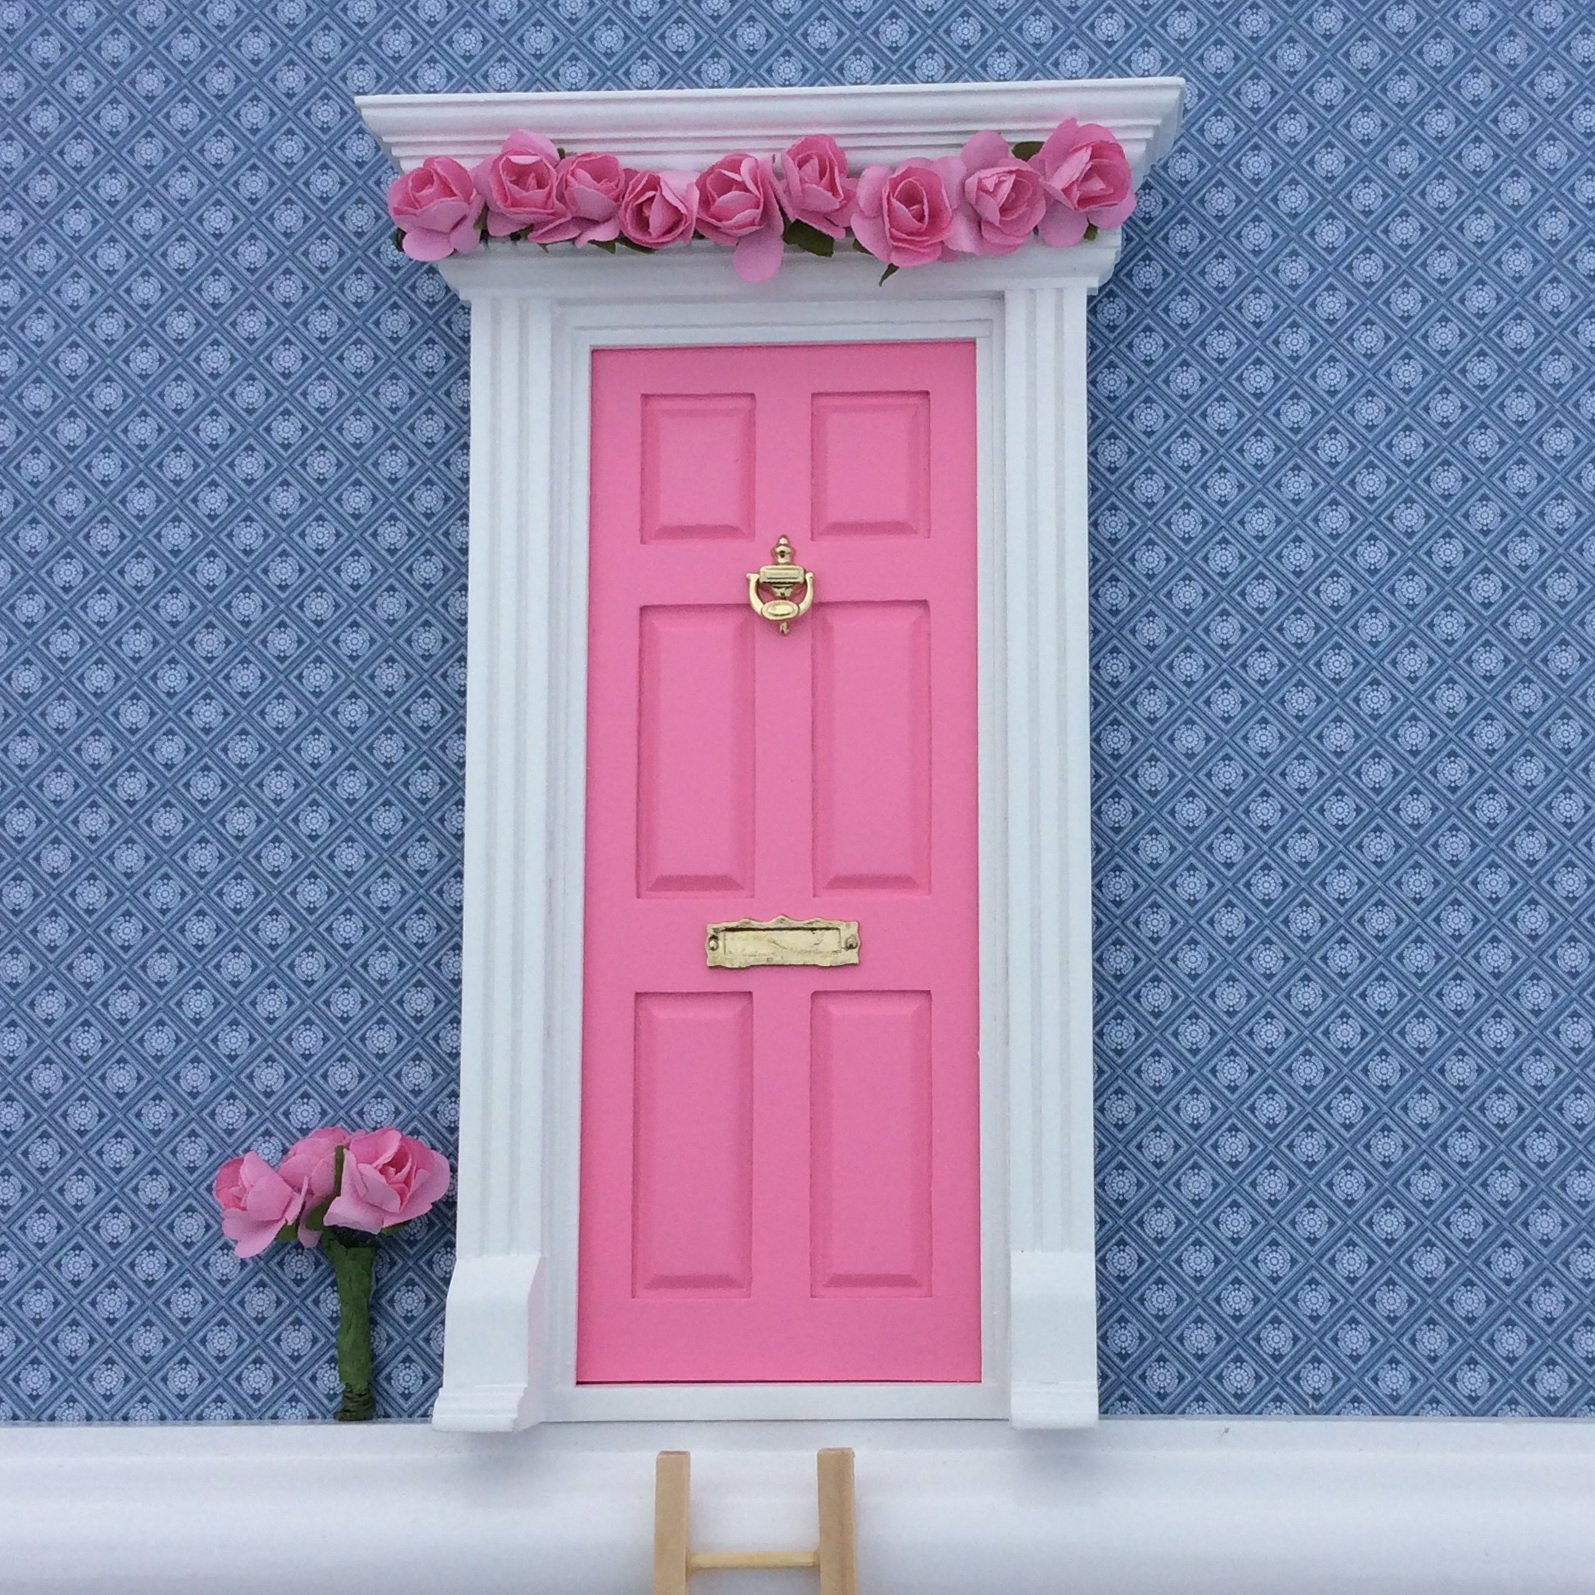 Fairy Door - Best Vintage Rose Bubblegum Pink Magic Door and Ladder Set for Kids Room Perfect for Bringing Fun, Adventure and Magic to Your Home